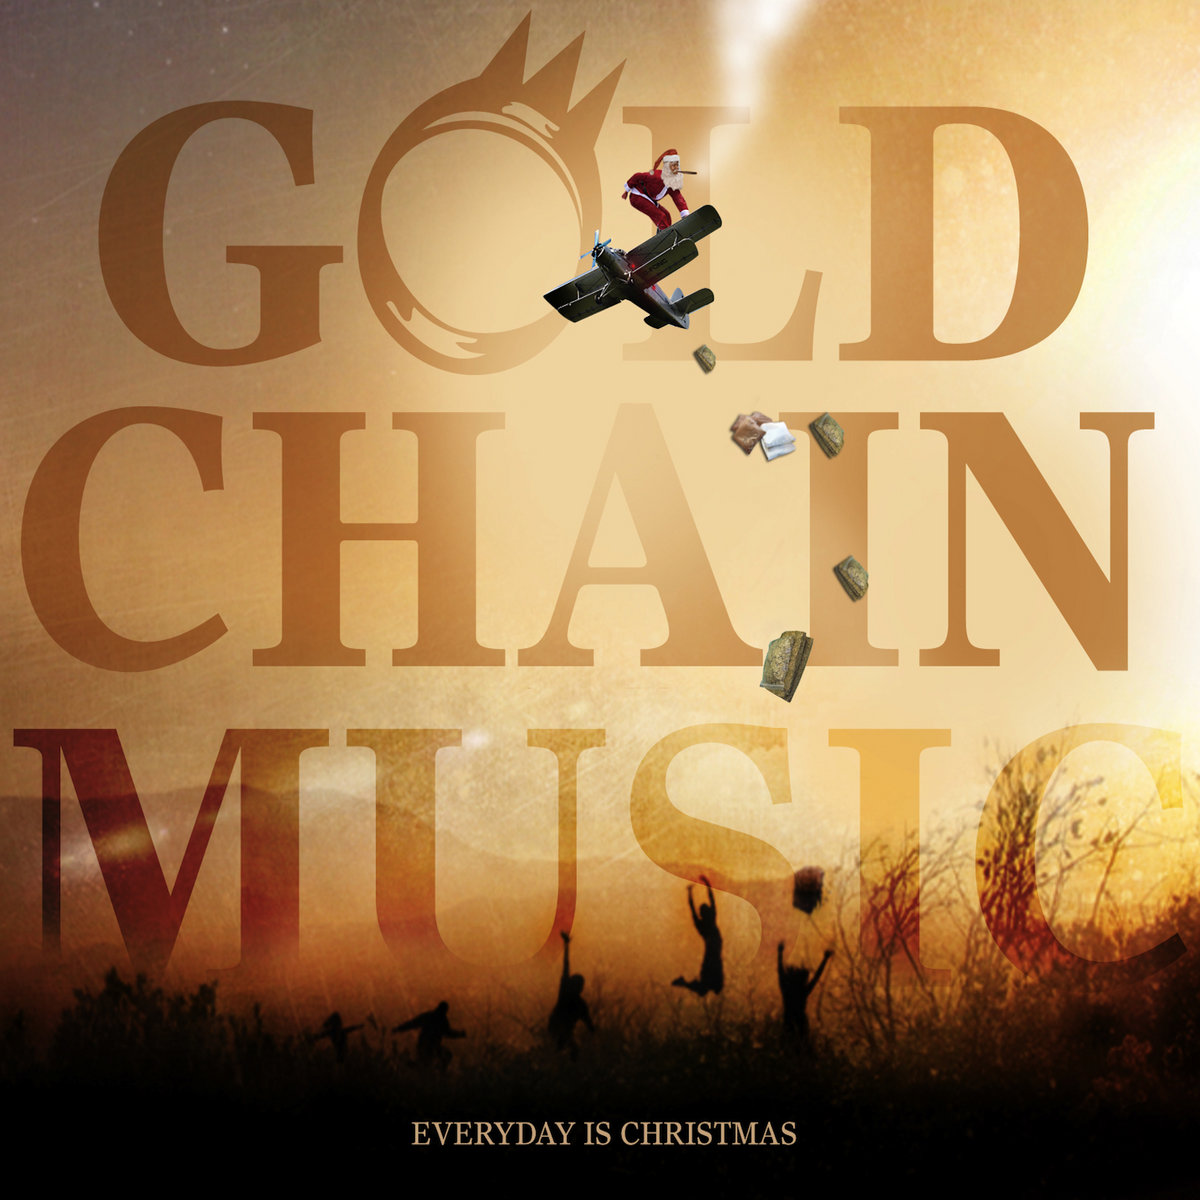 Everyday is Christmas | Gold Chain Music